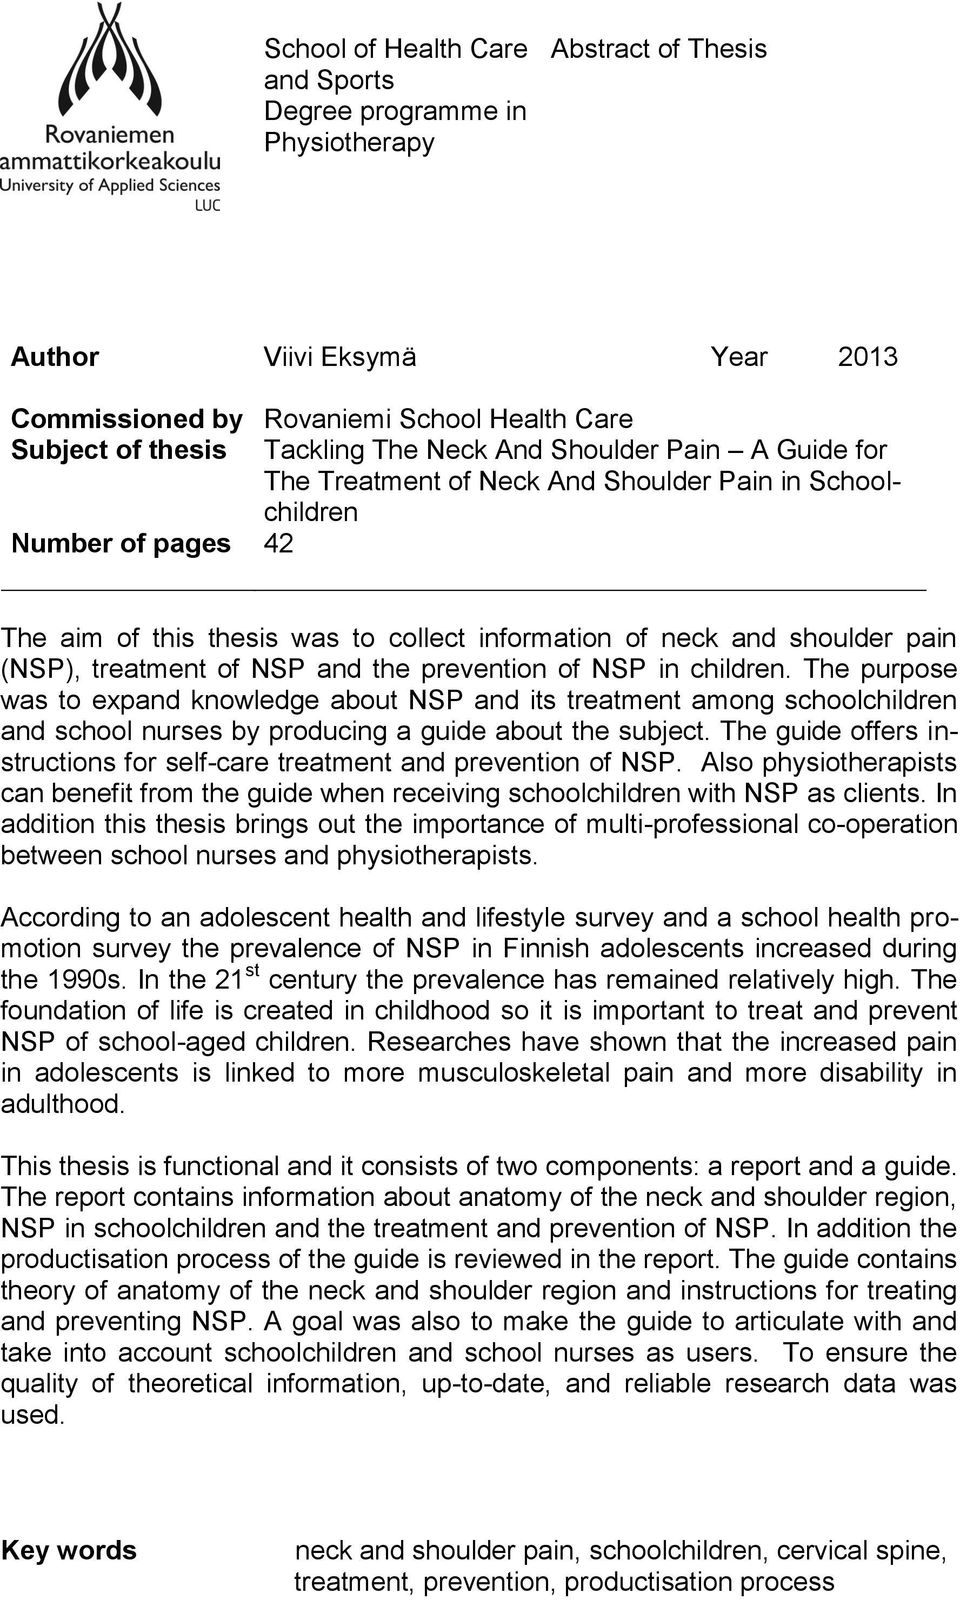 treatment of NSP and the prevention of NSP in children. The purpose was to expand knowledge about NSP and its treatment among schoolchildren and school nurses by producing a guide about the subject.